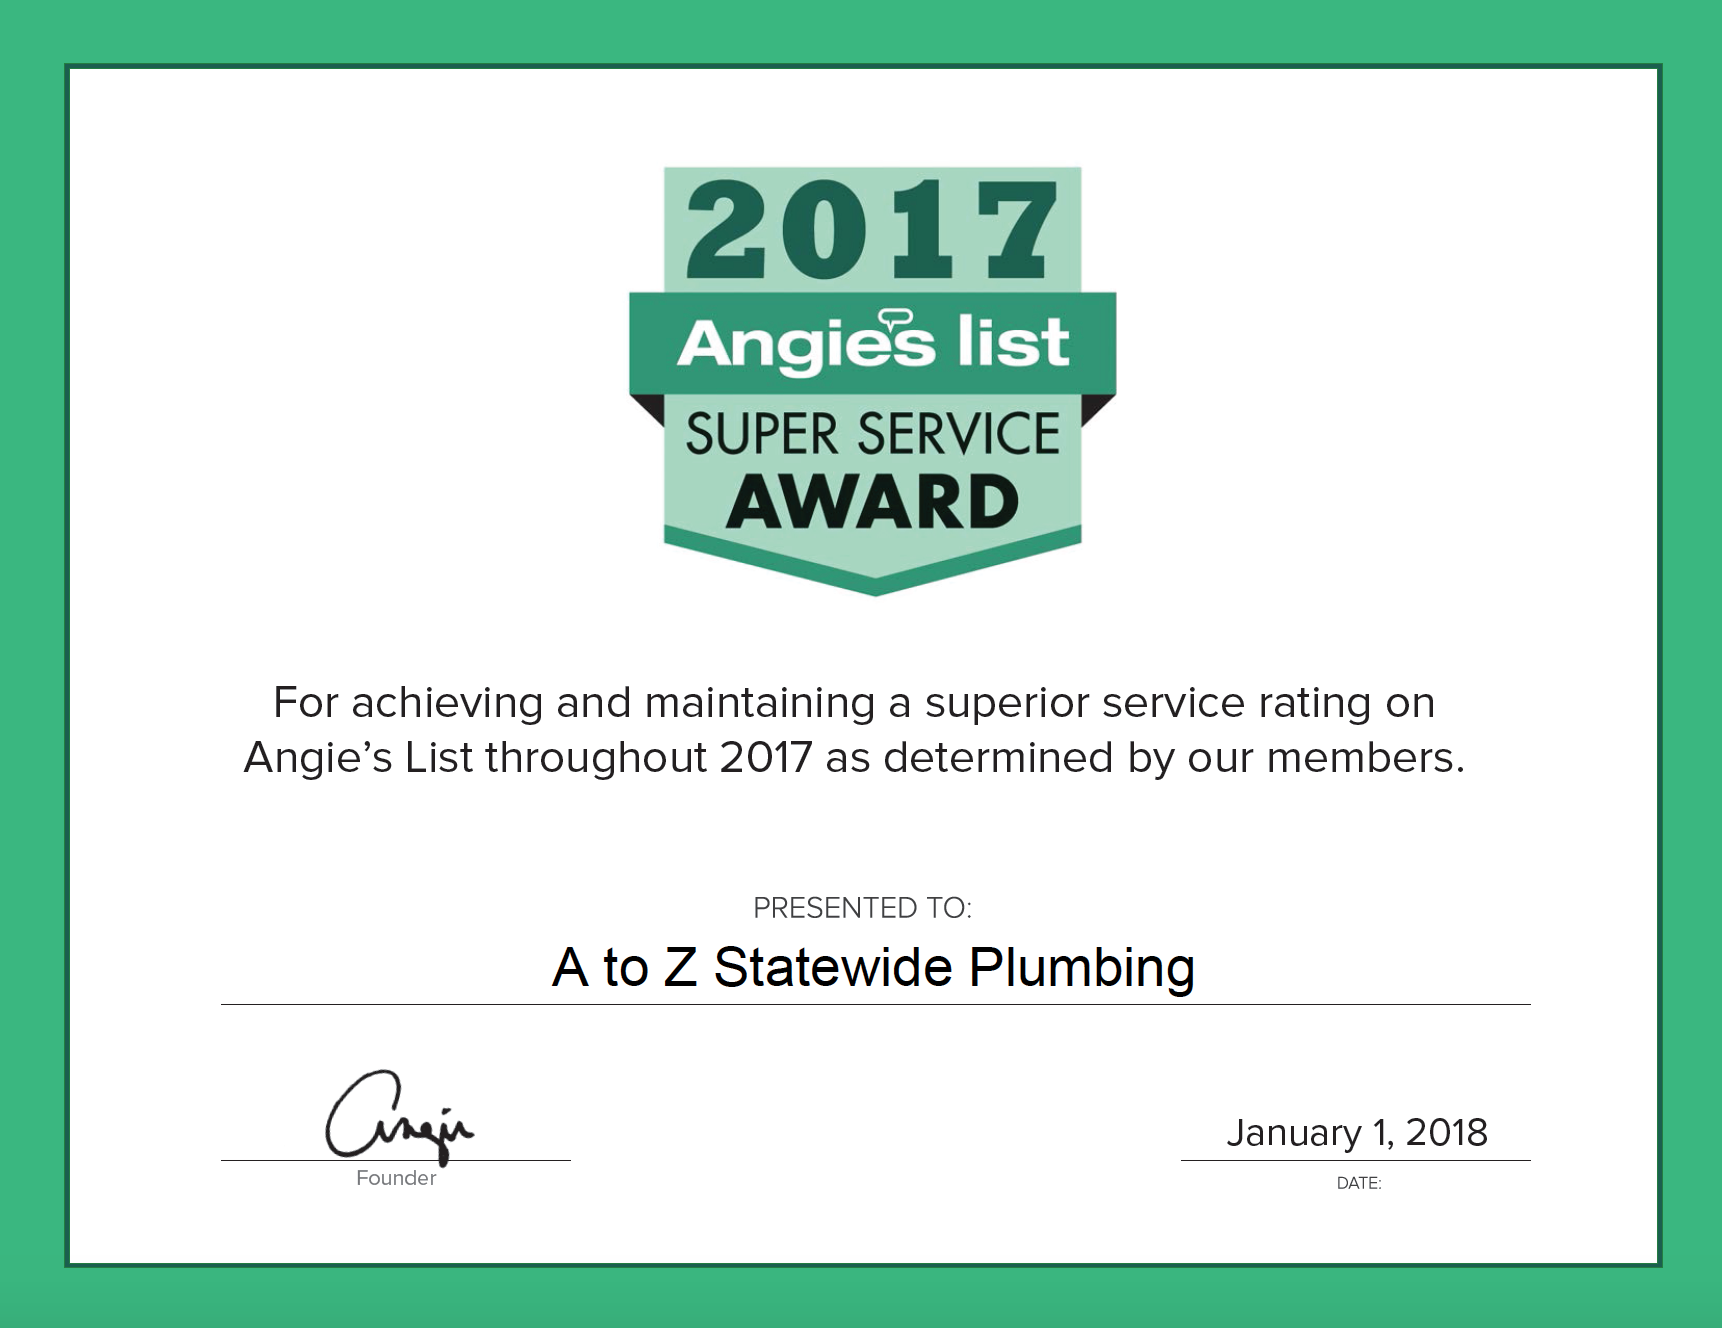 A to Z Statewide Plumbing Earns Esteemed 2017 Angie's List Super Service Award